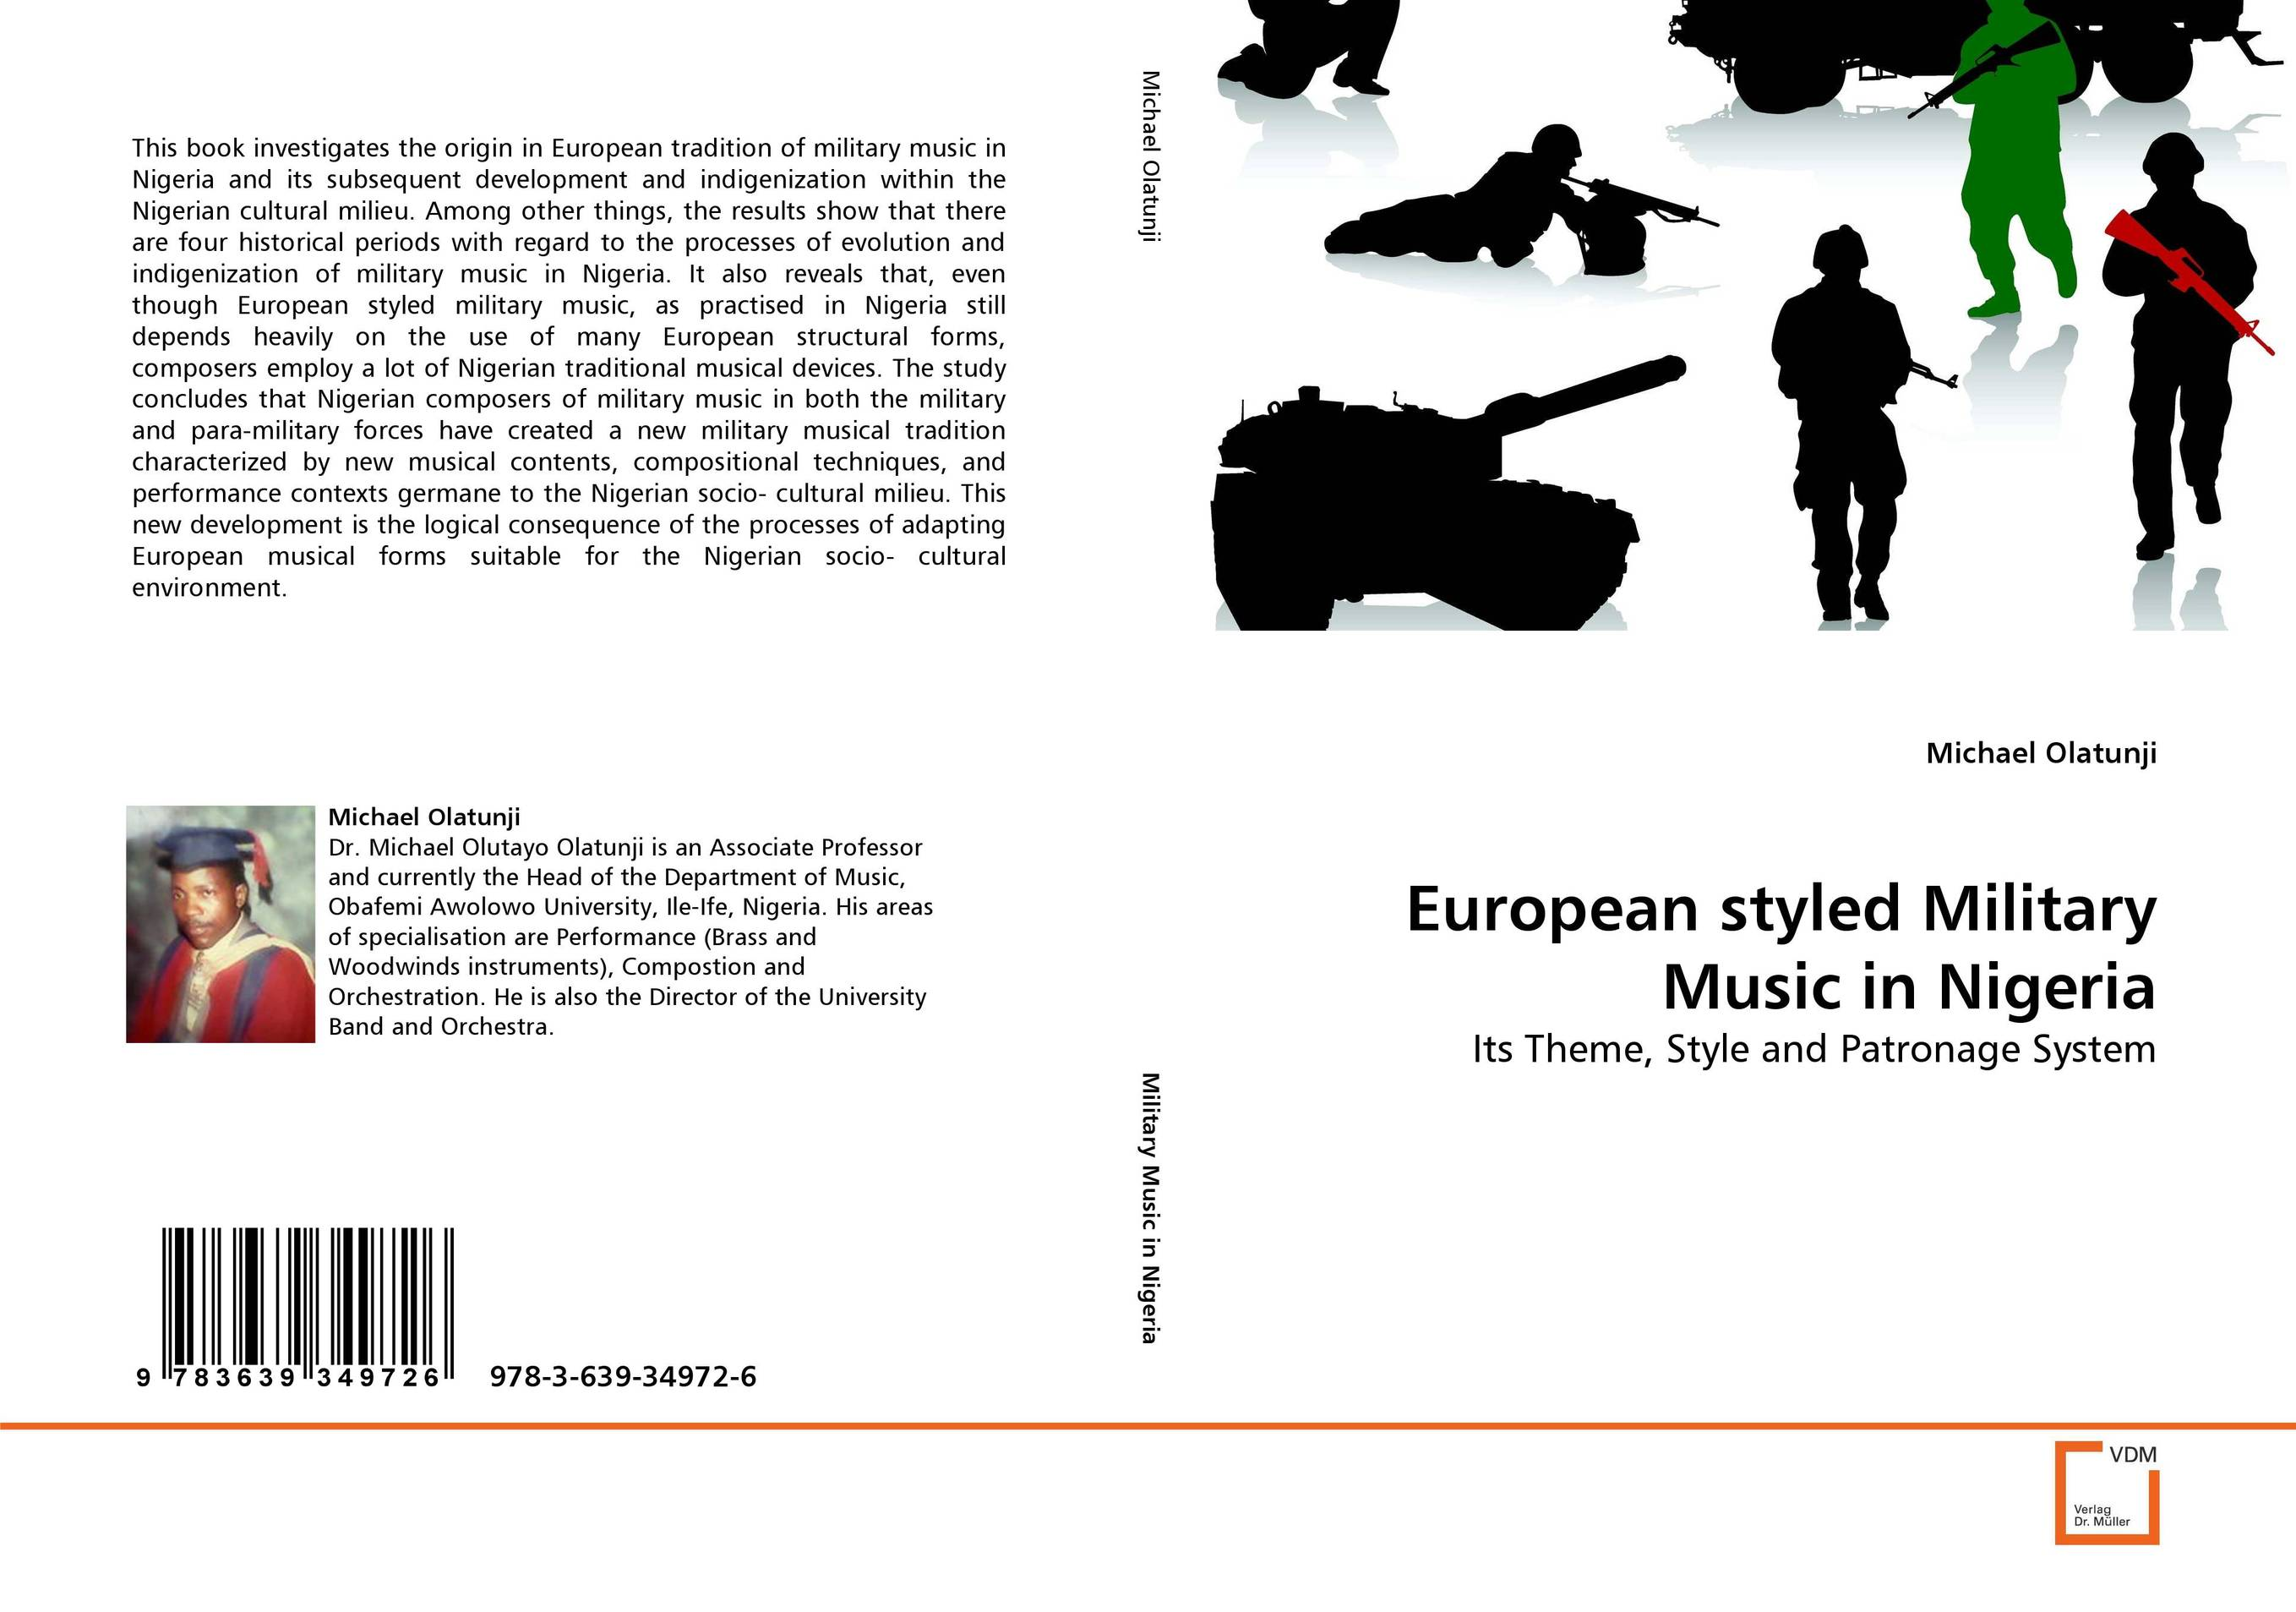 European styled Military Music in Nigeria privatization and firms performance in nigeria